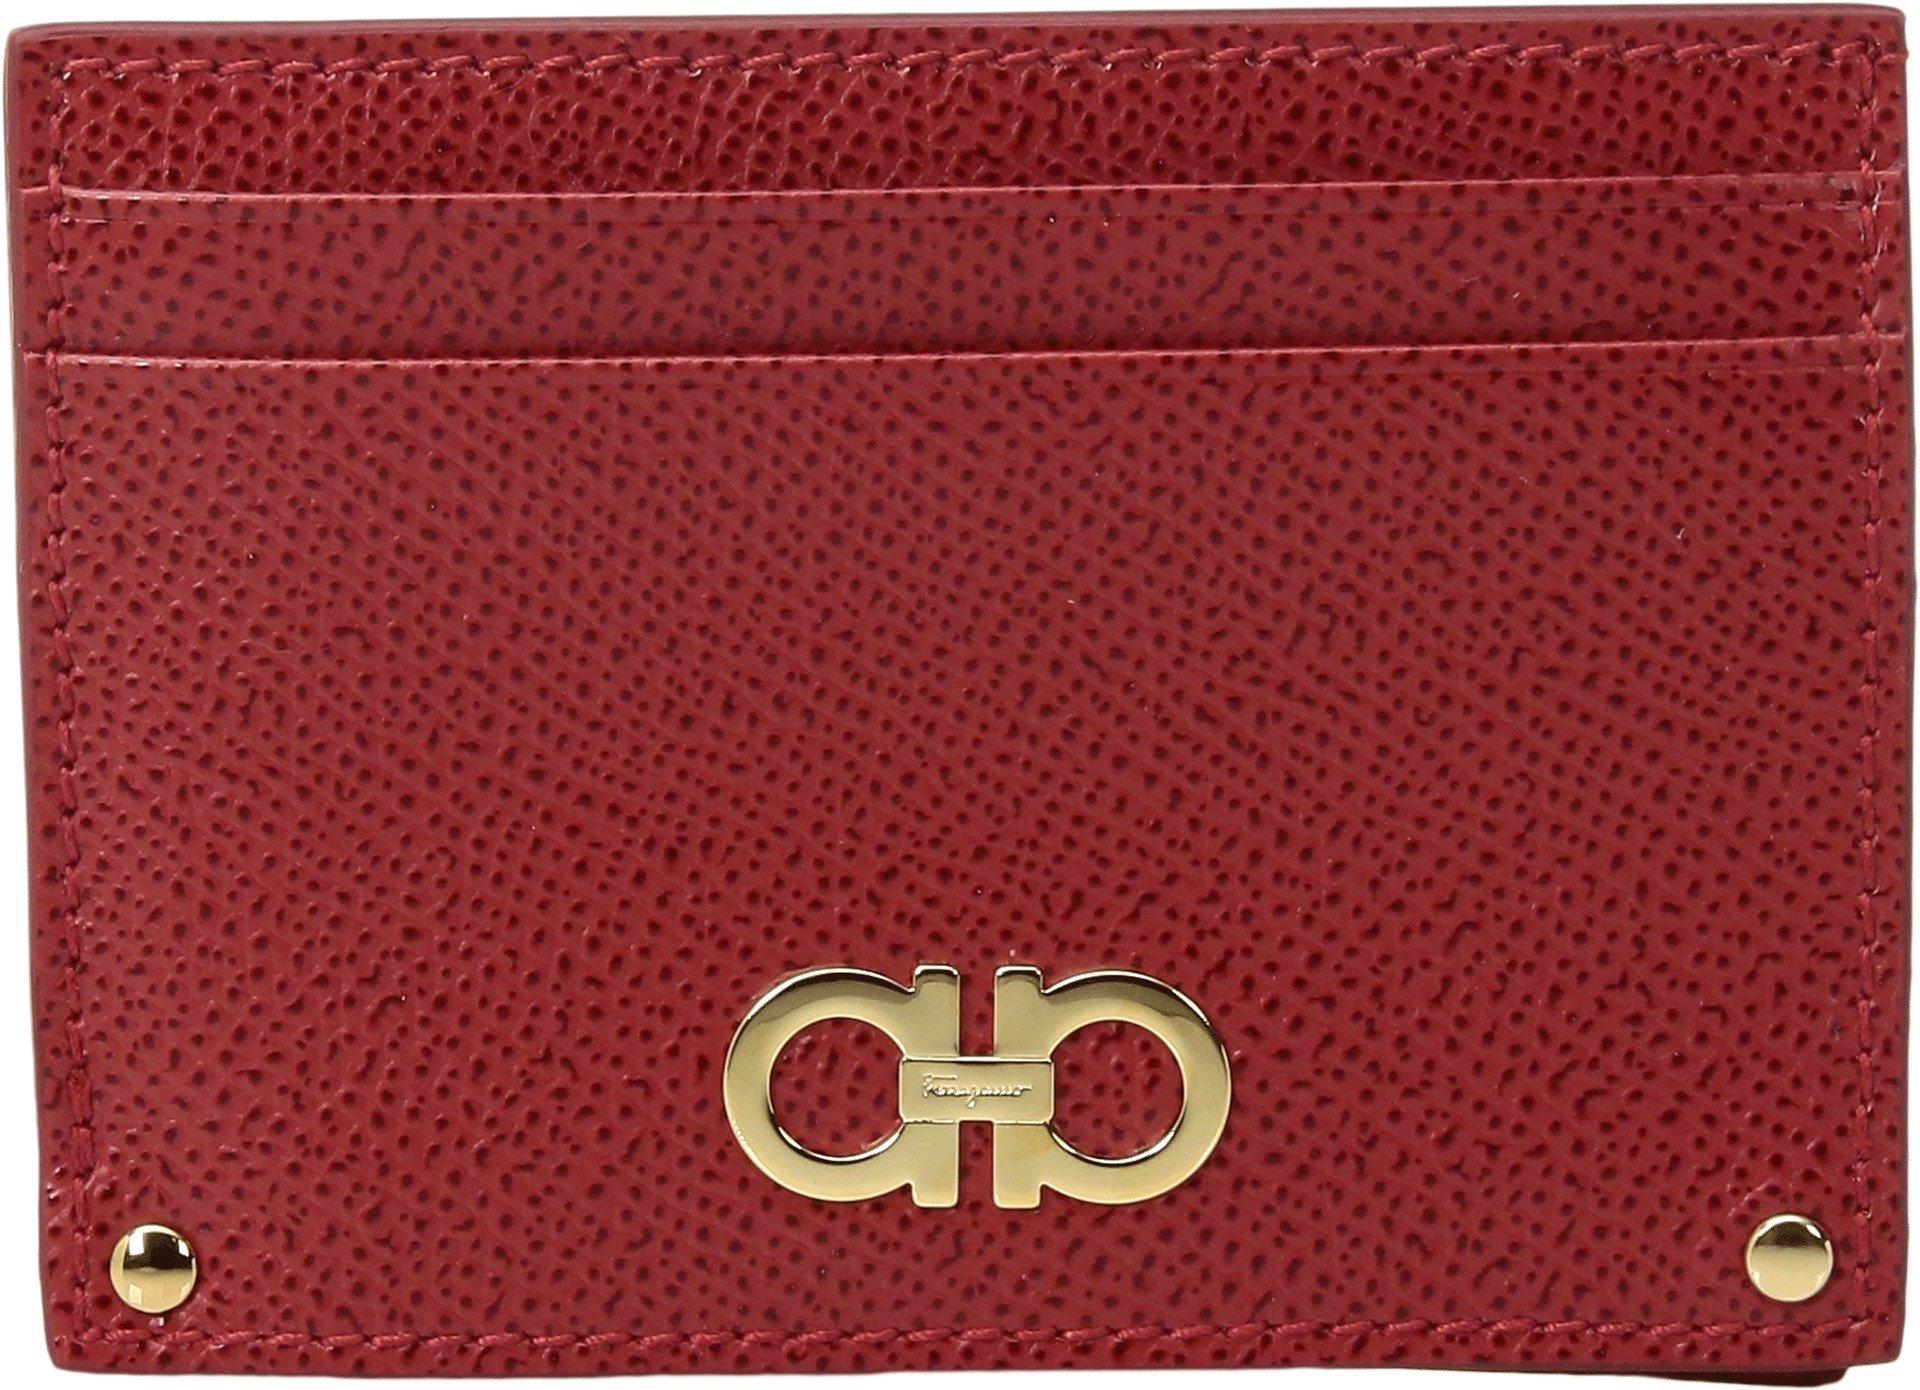 Salvatore Ferragamo Women's Gancini Card Holder, Lipstick, One Size